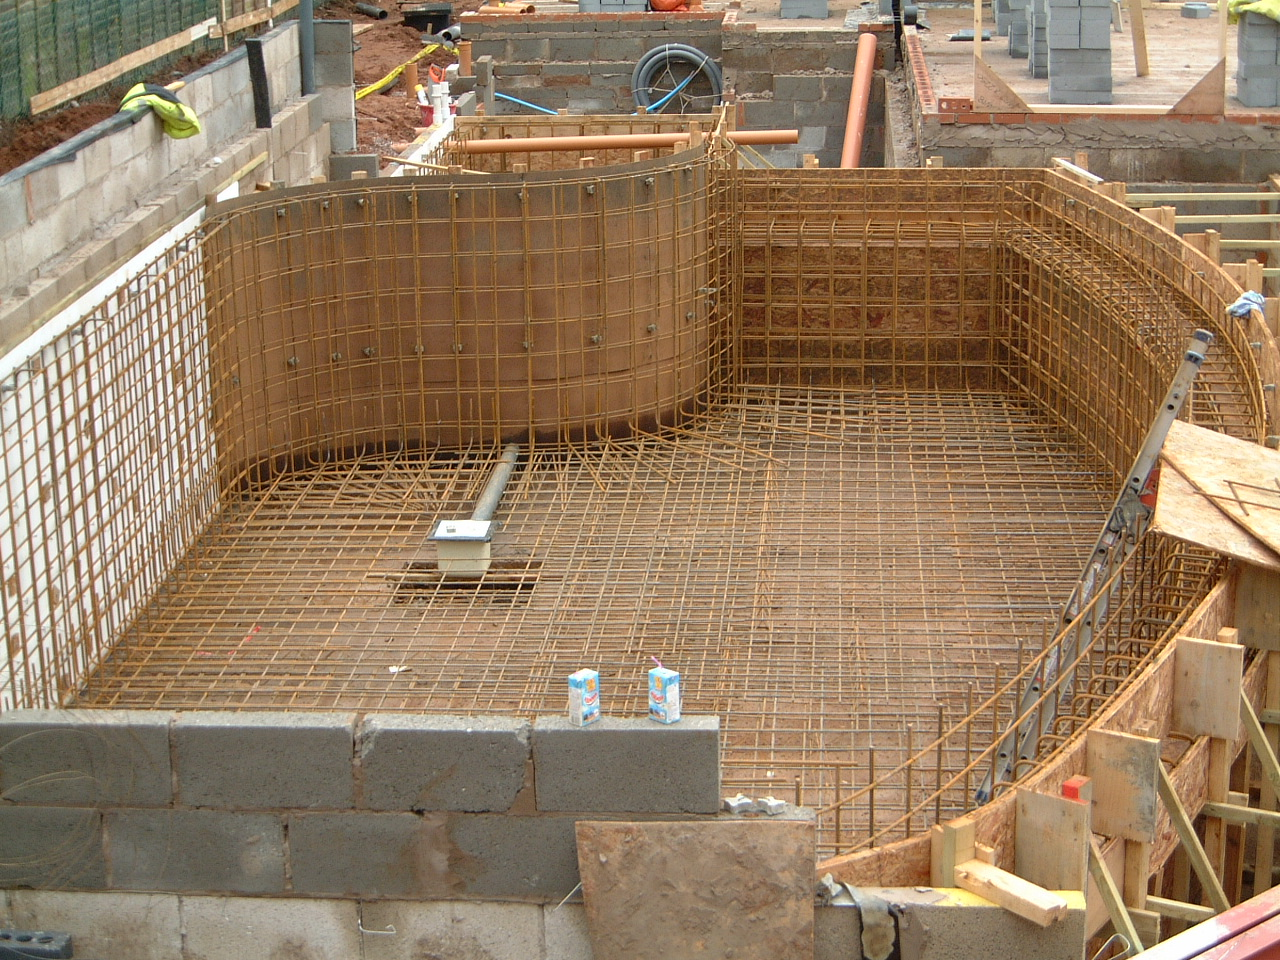 Swimming Pool Shell Construction - Rebar Steels